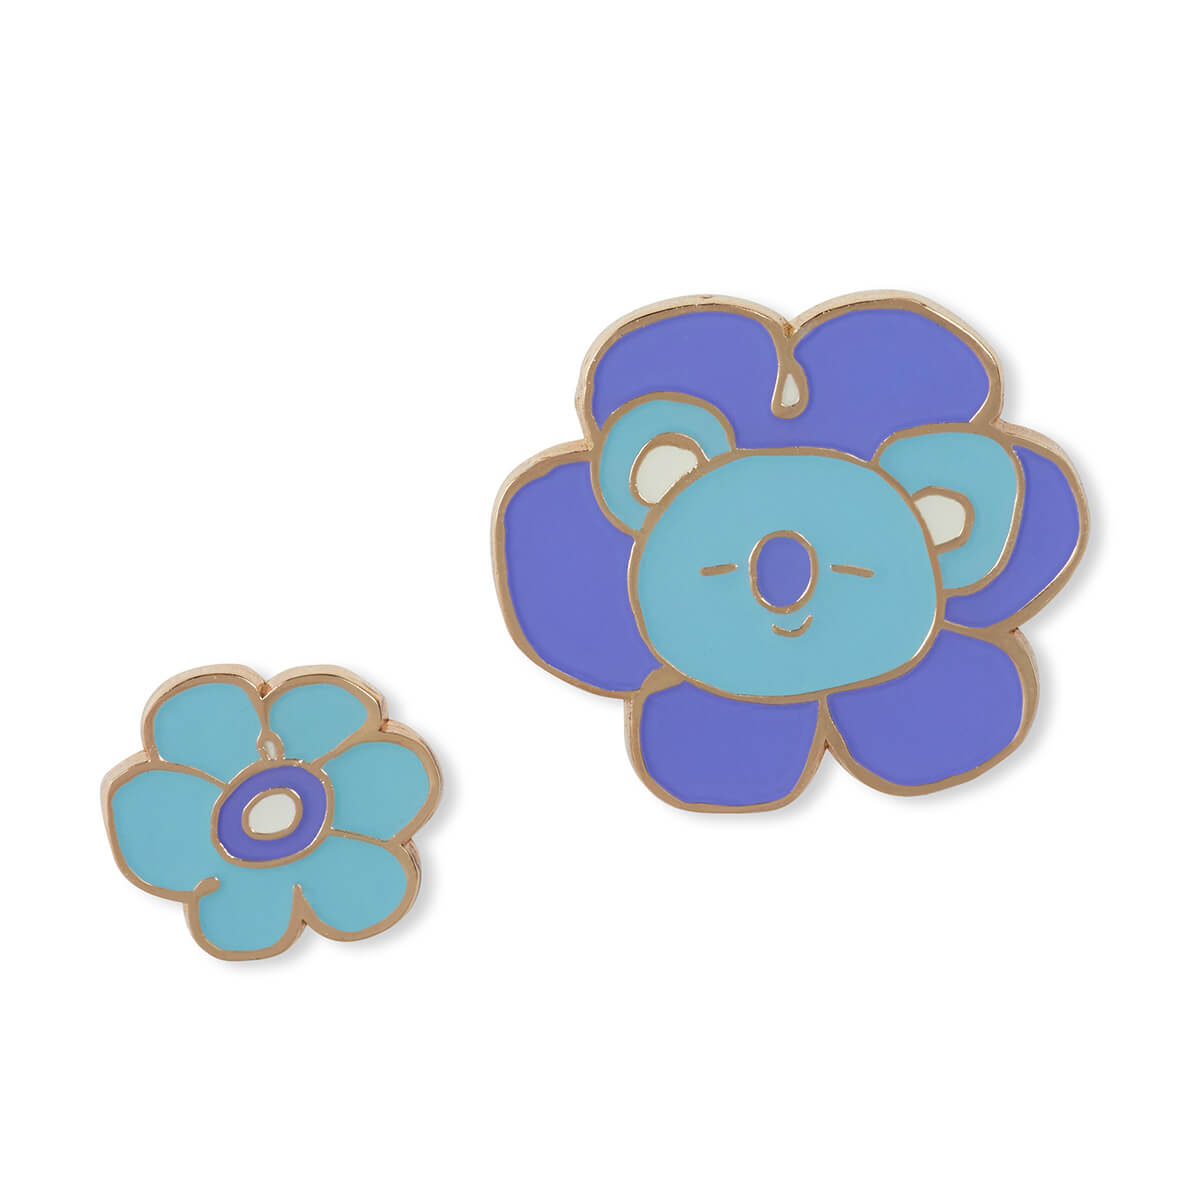 BT21 KOYA Flower Enamel Pin 2 Piece Set